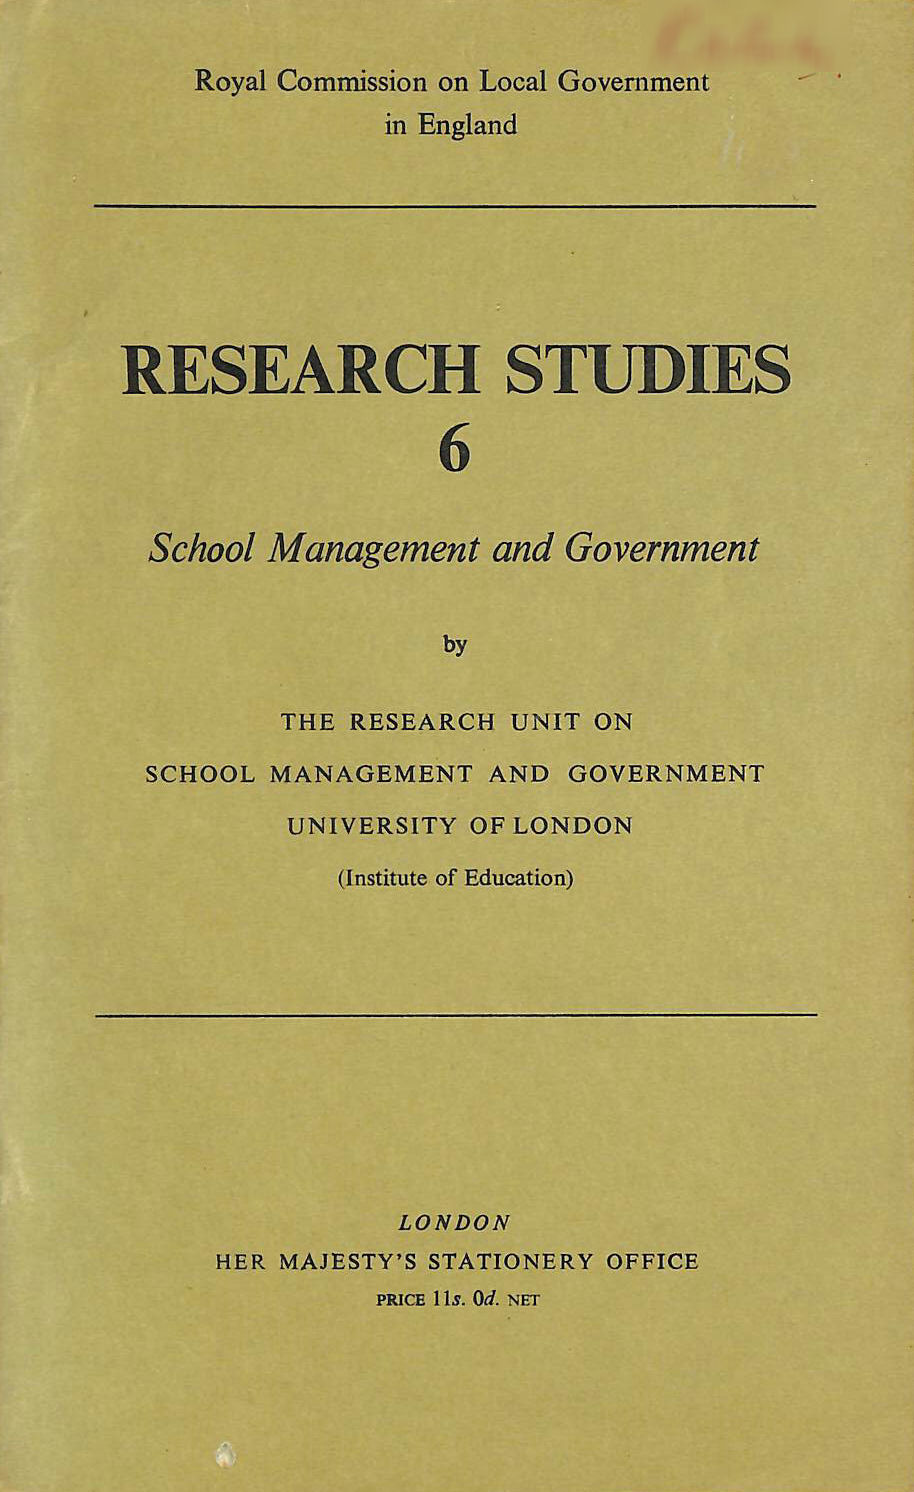 Image for Research Studies 6 School Management and Government